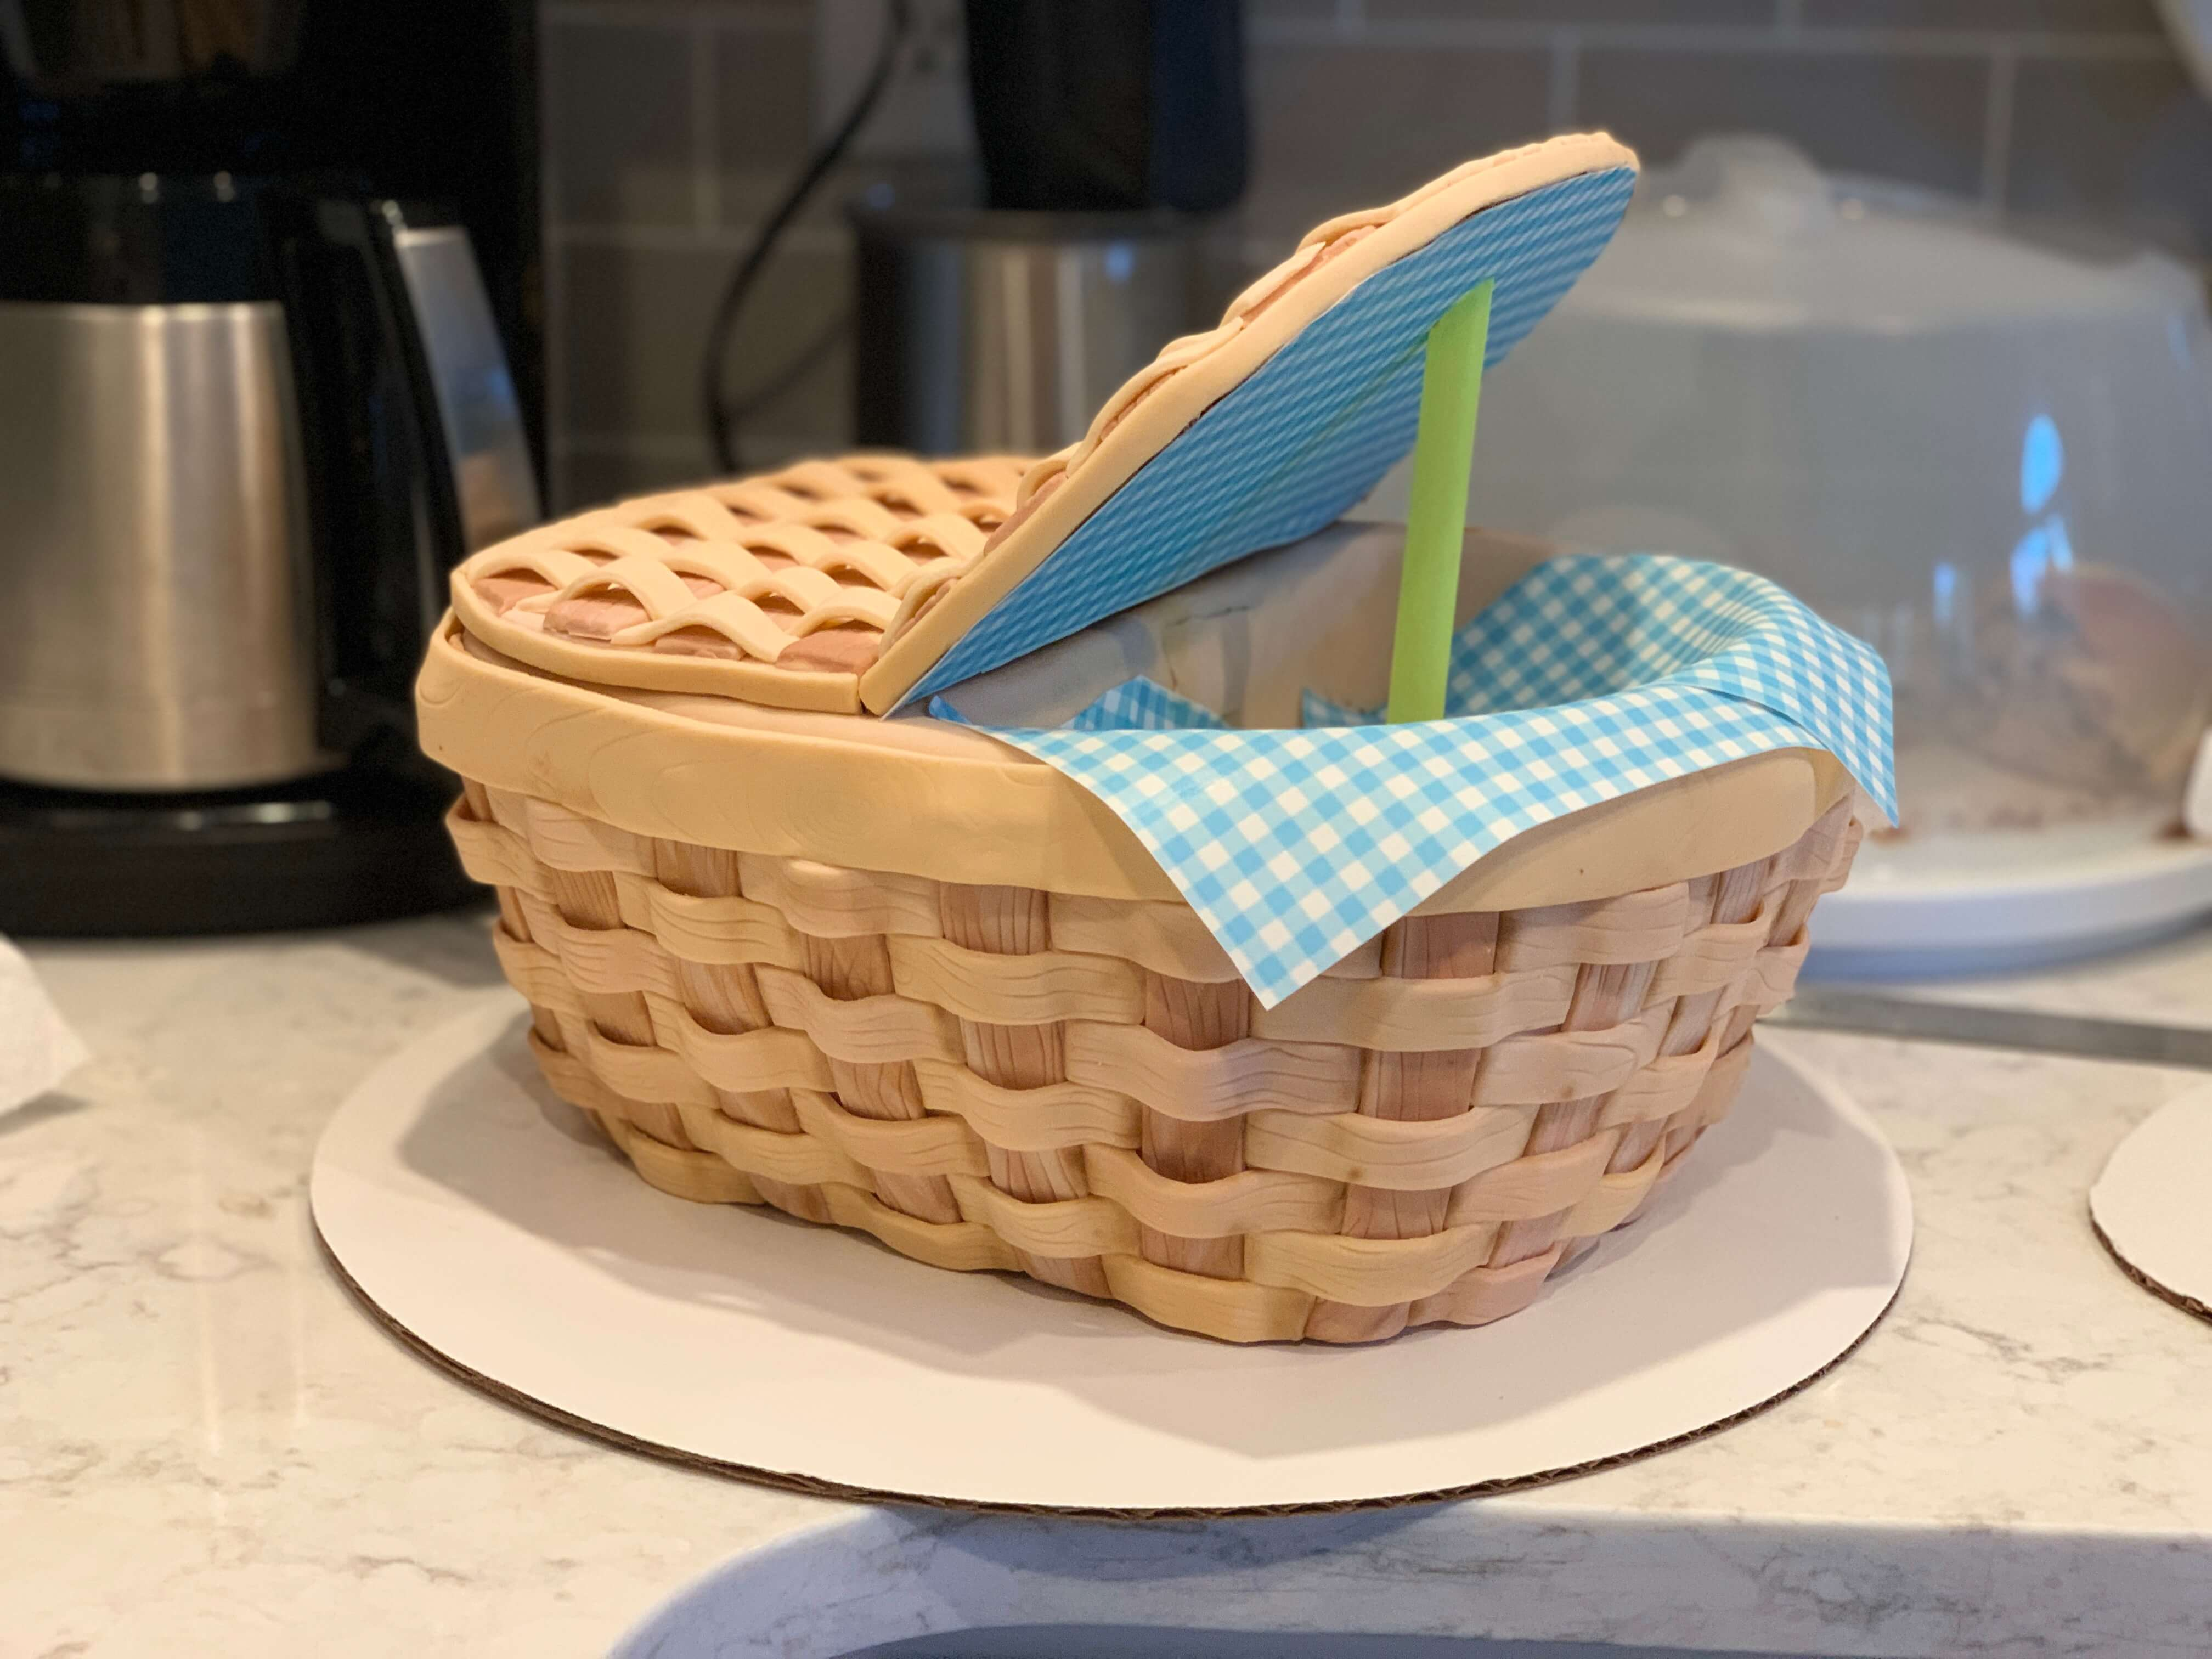 Making the Basket Cake - Lid Assembly